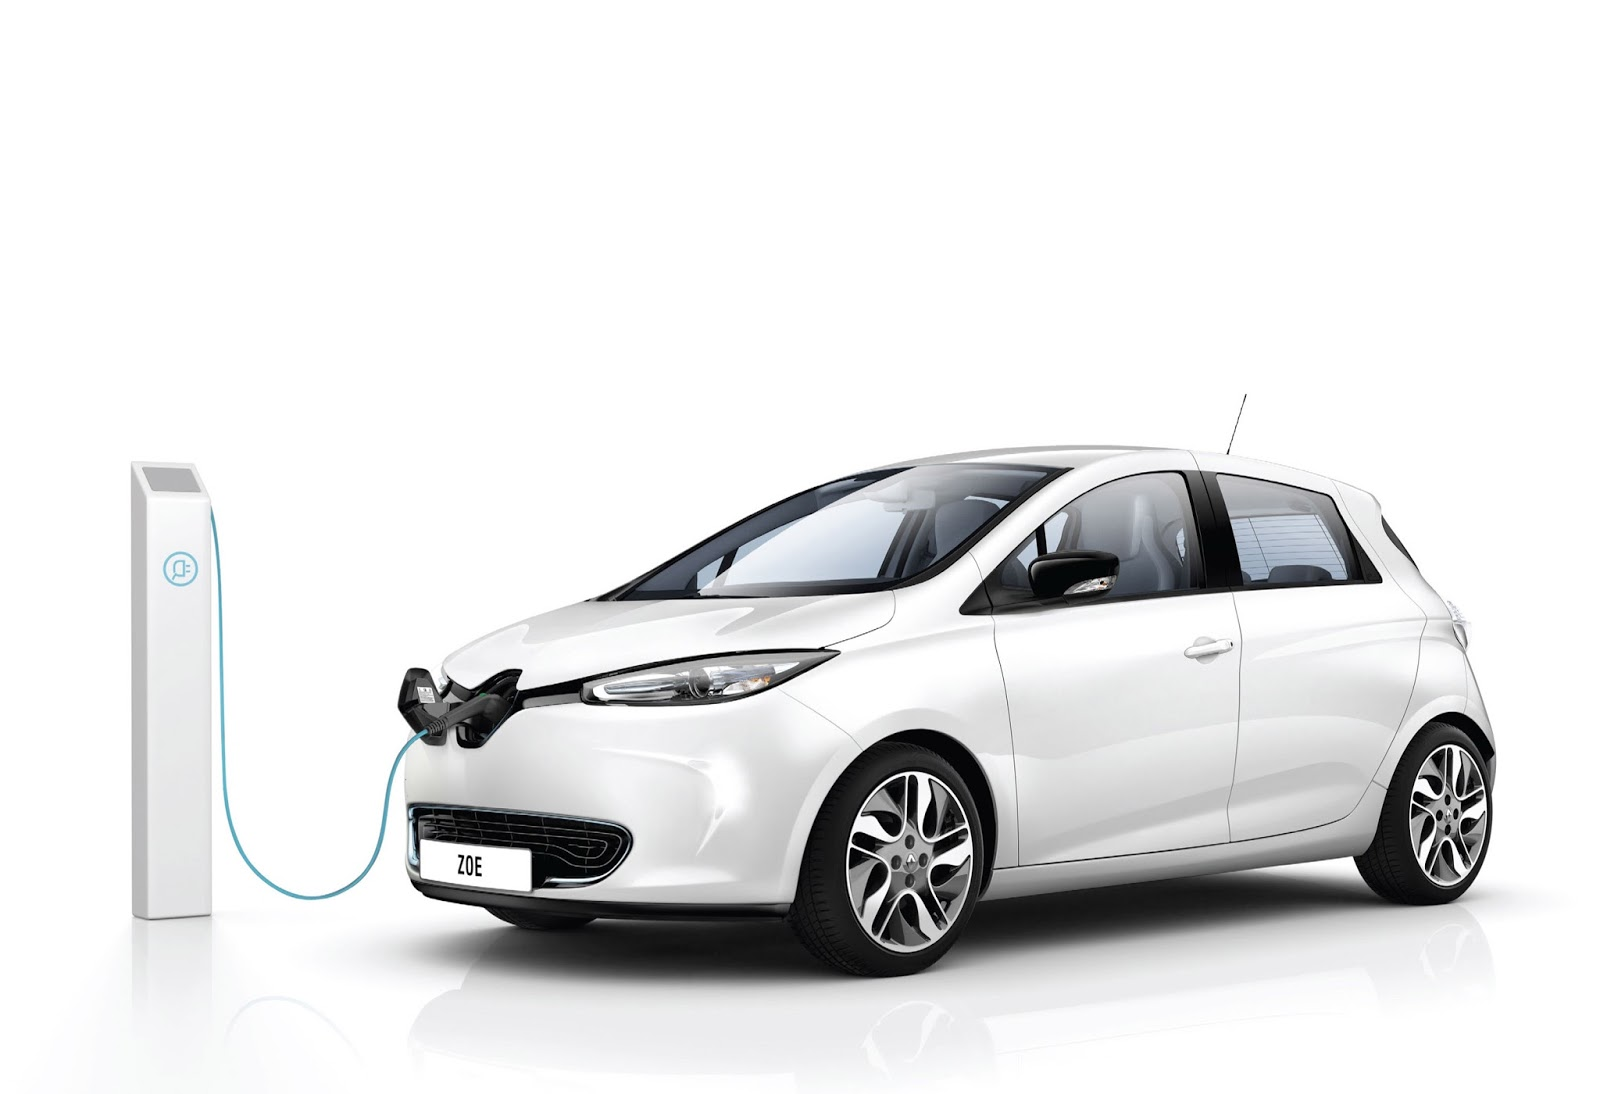 renault zoe 2013 hottest car wallpapers bestgarage. Black Bedroom Furniture Sets. Home Design Ideas